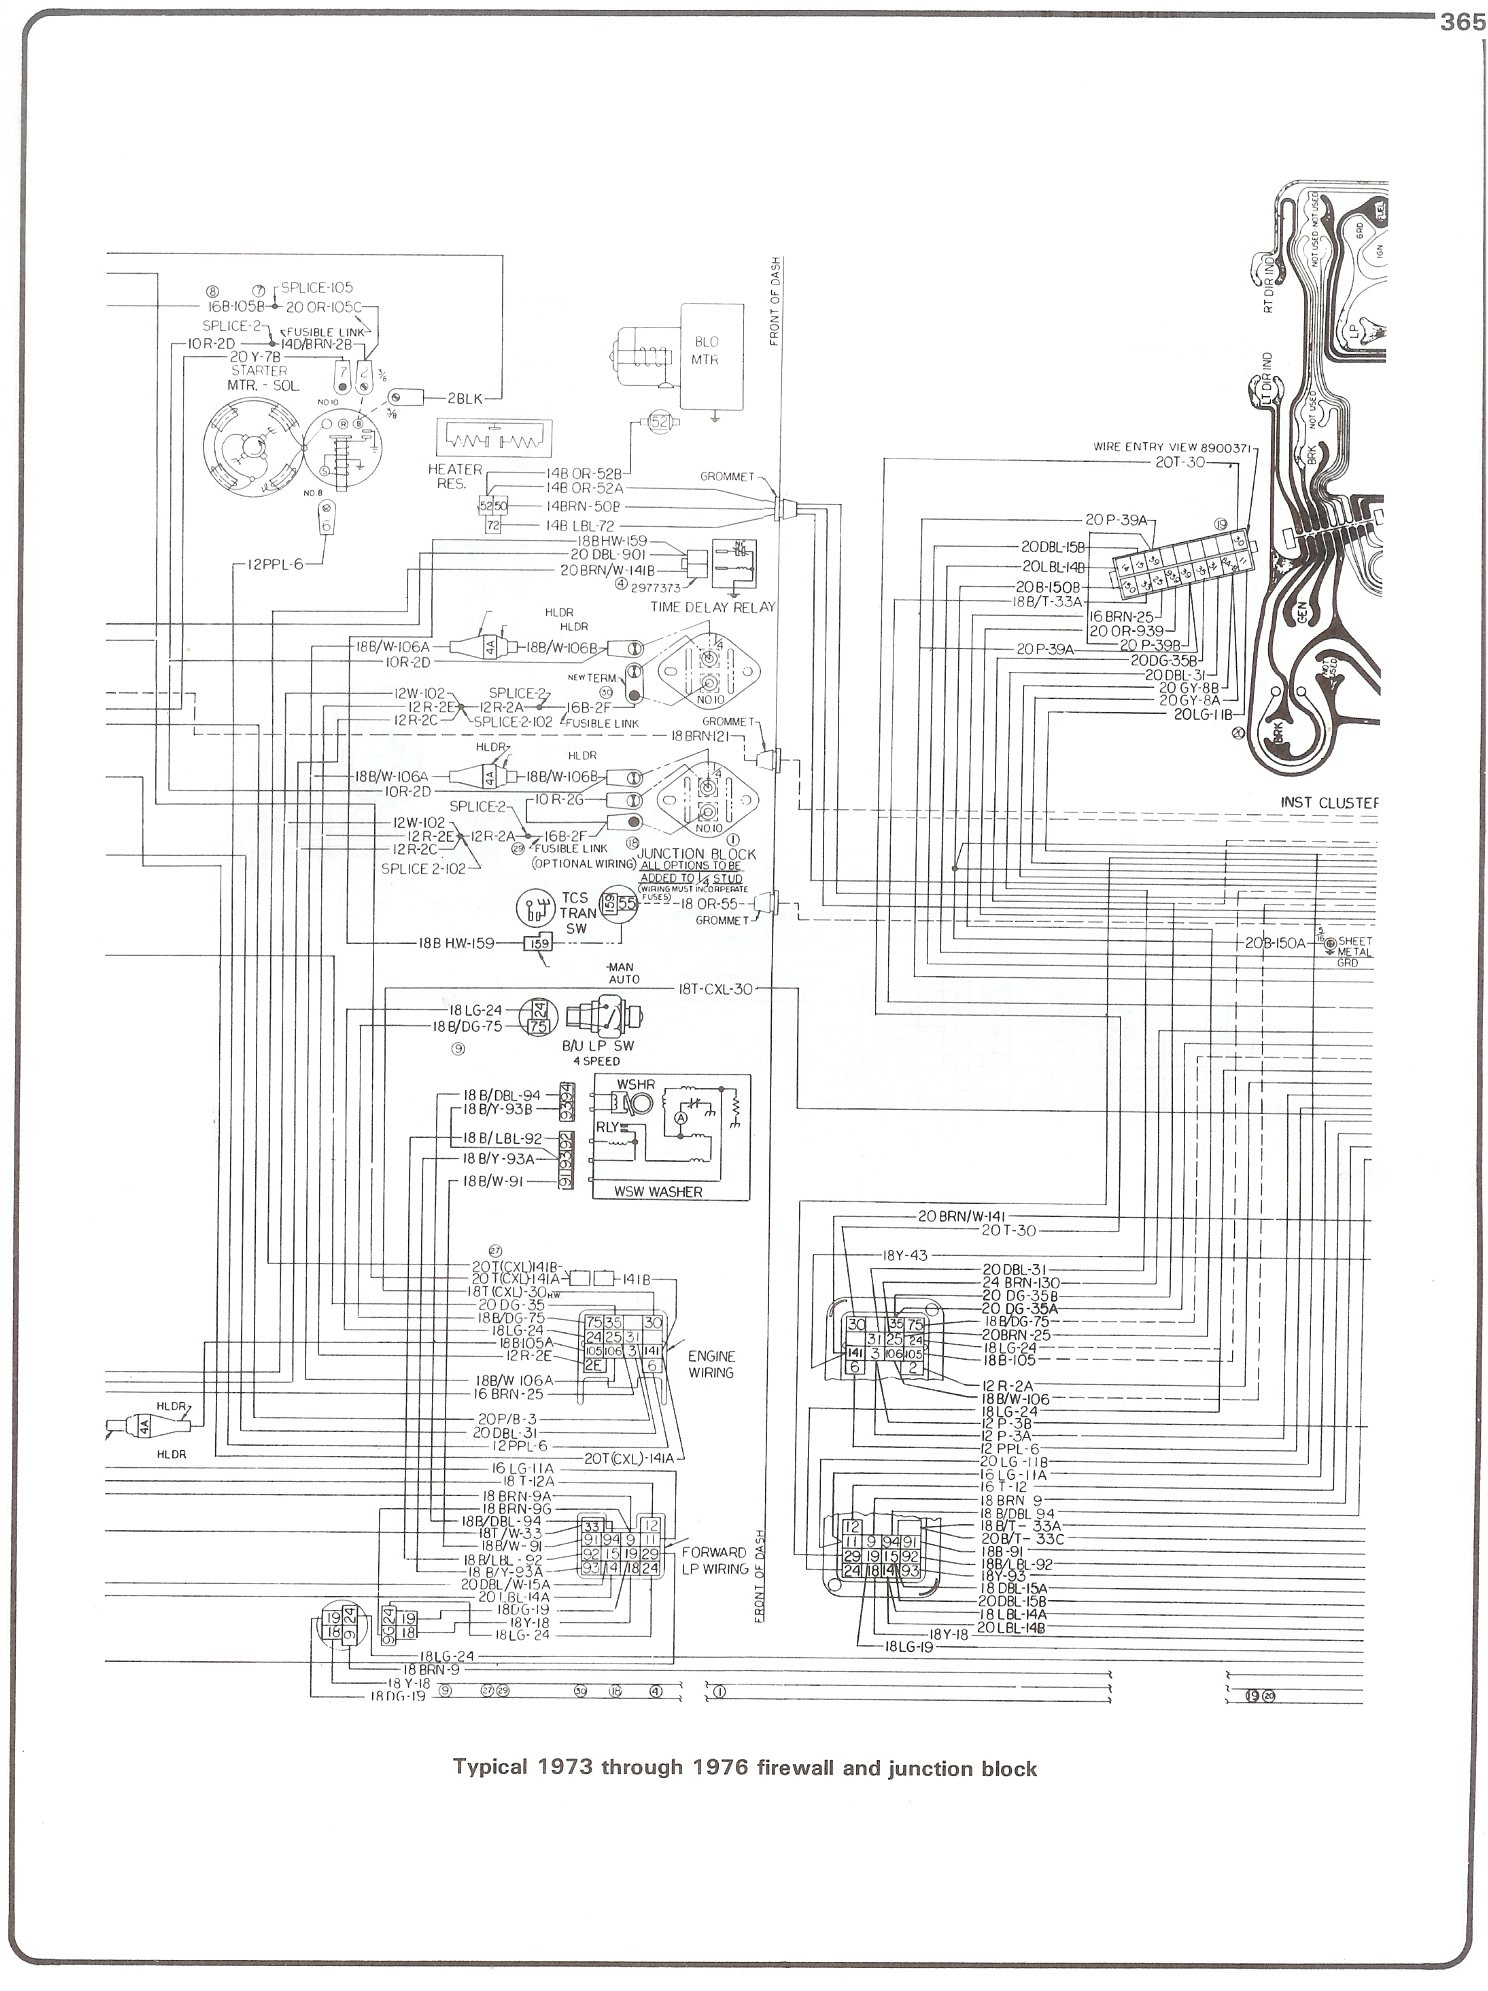 Horn Wiring Diagram Of 76 Opinions About Gm Schematics Diagrams U2022 Rh Parntesis Co 12 Volt